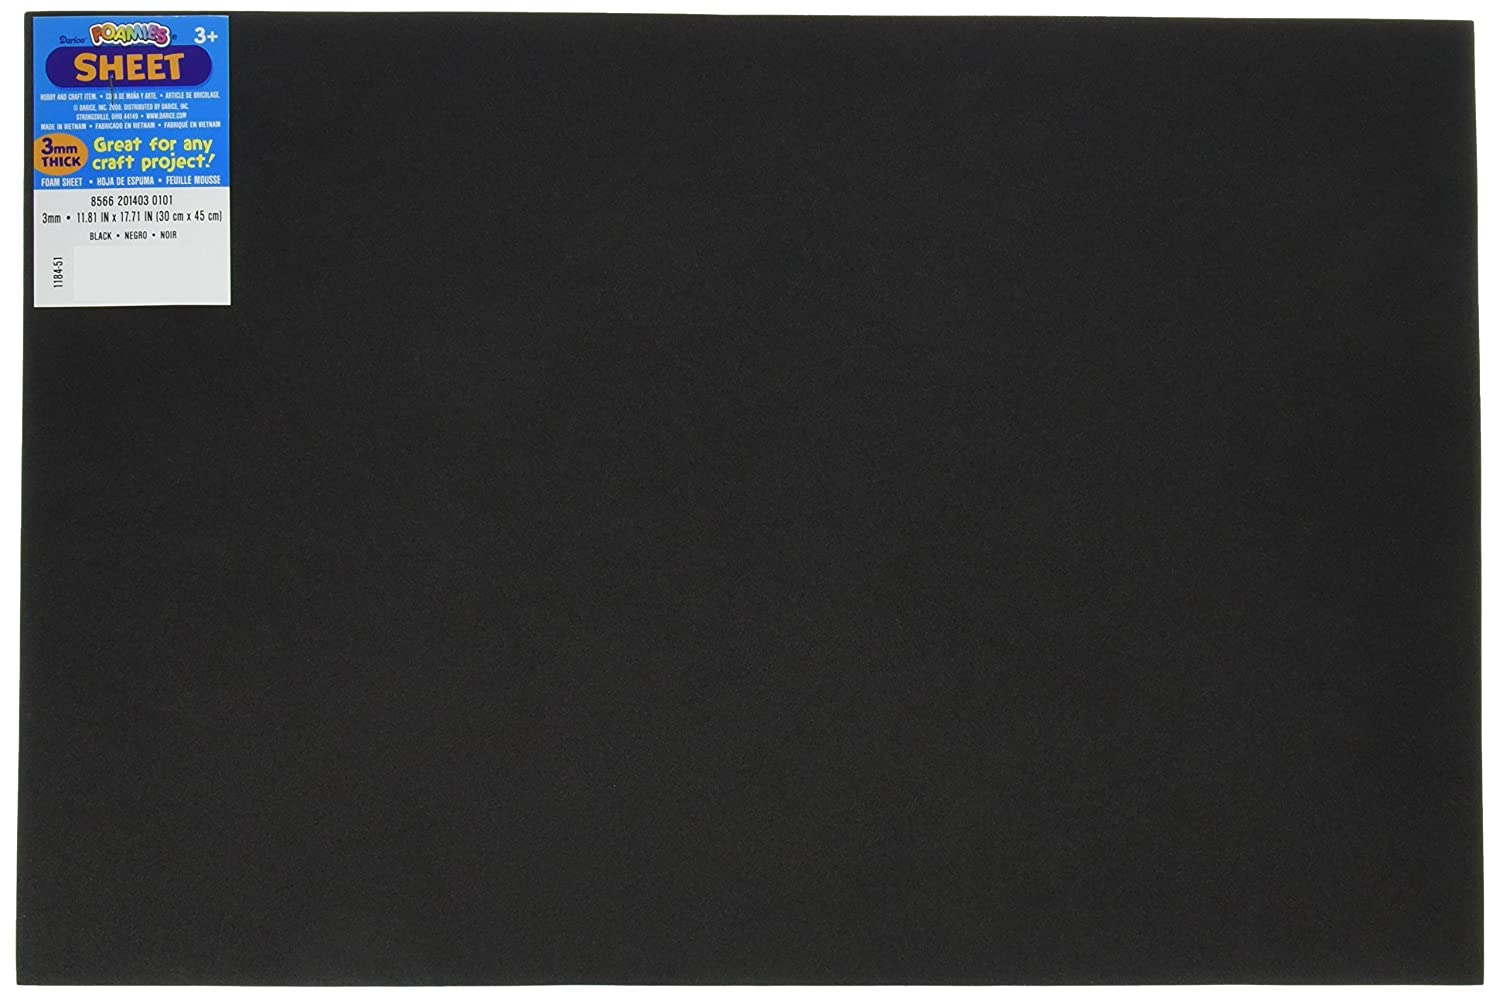 Bulk Buy: Darice Foamies Foam Sheet Black 3mm thick 12 x 18 inches (10-Pack) 1184-51 from Amazon